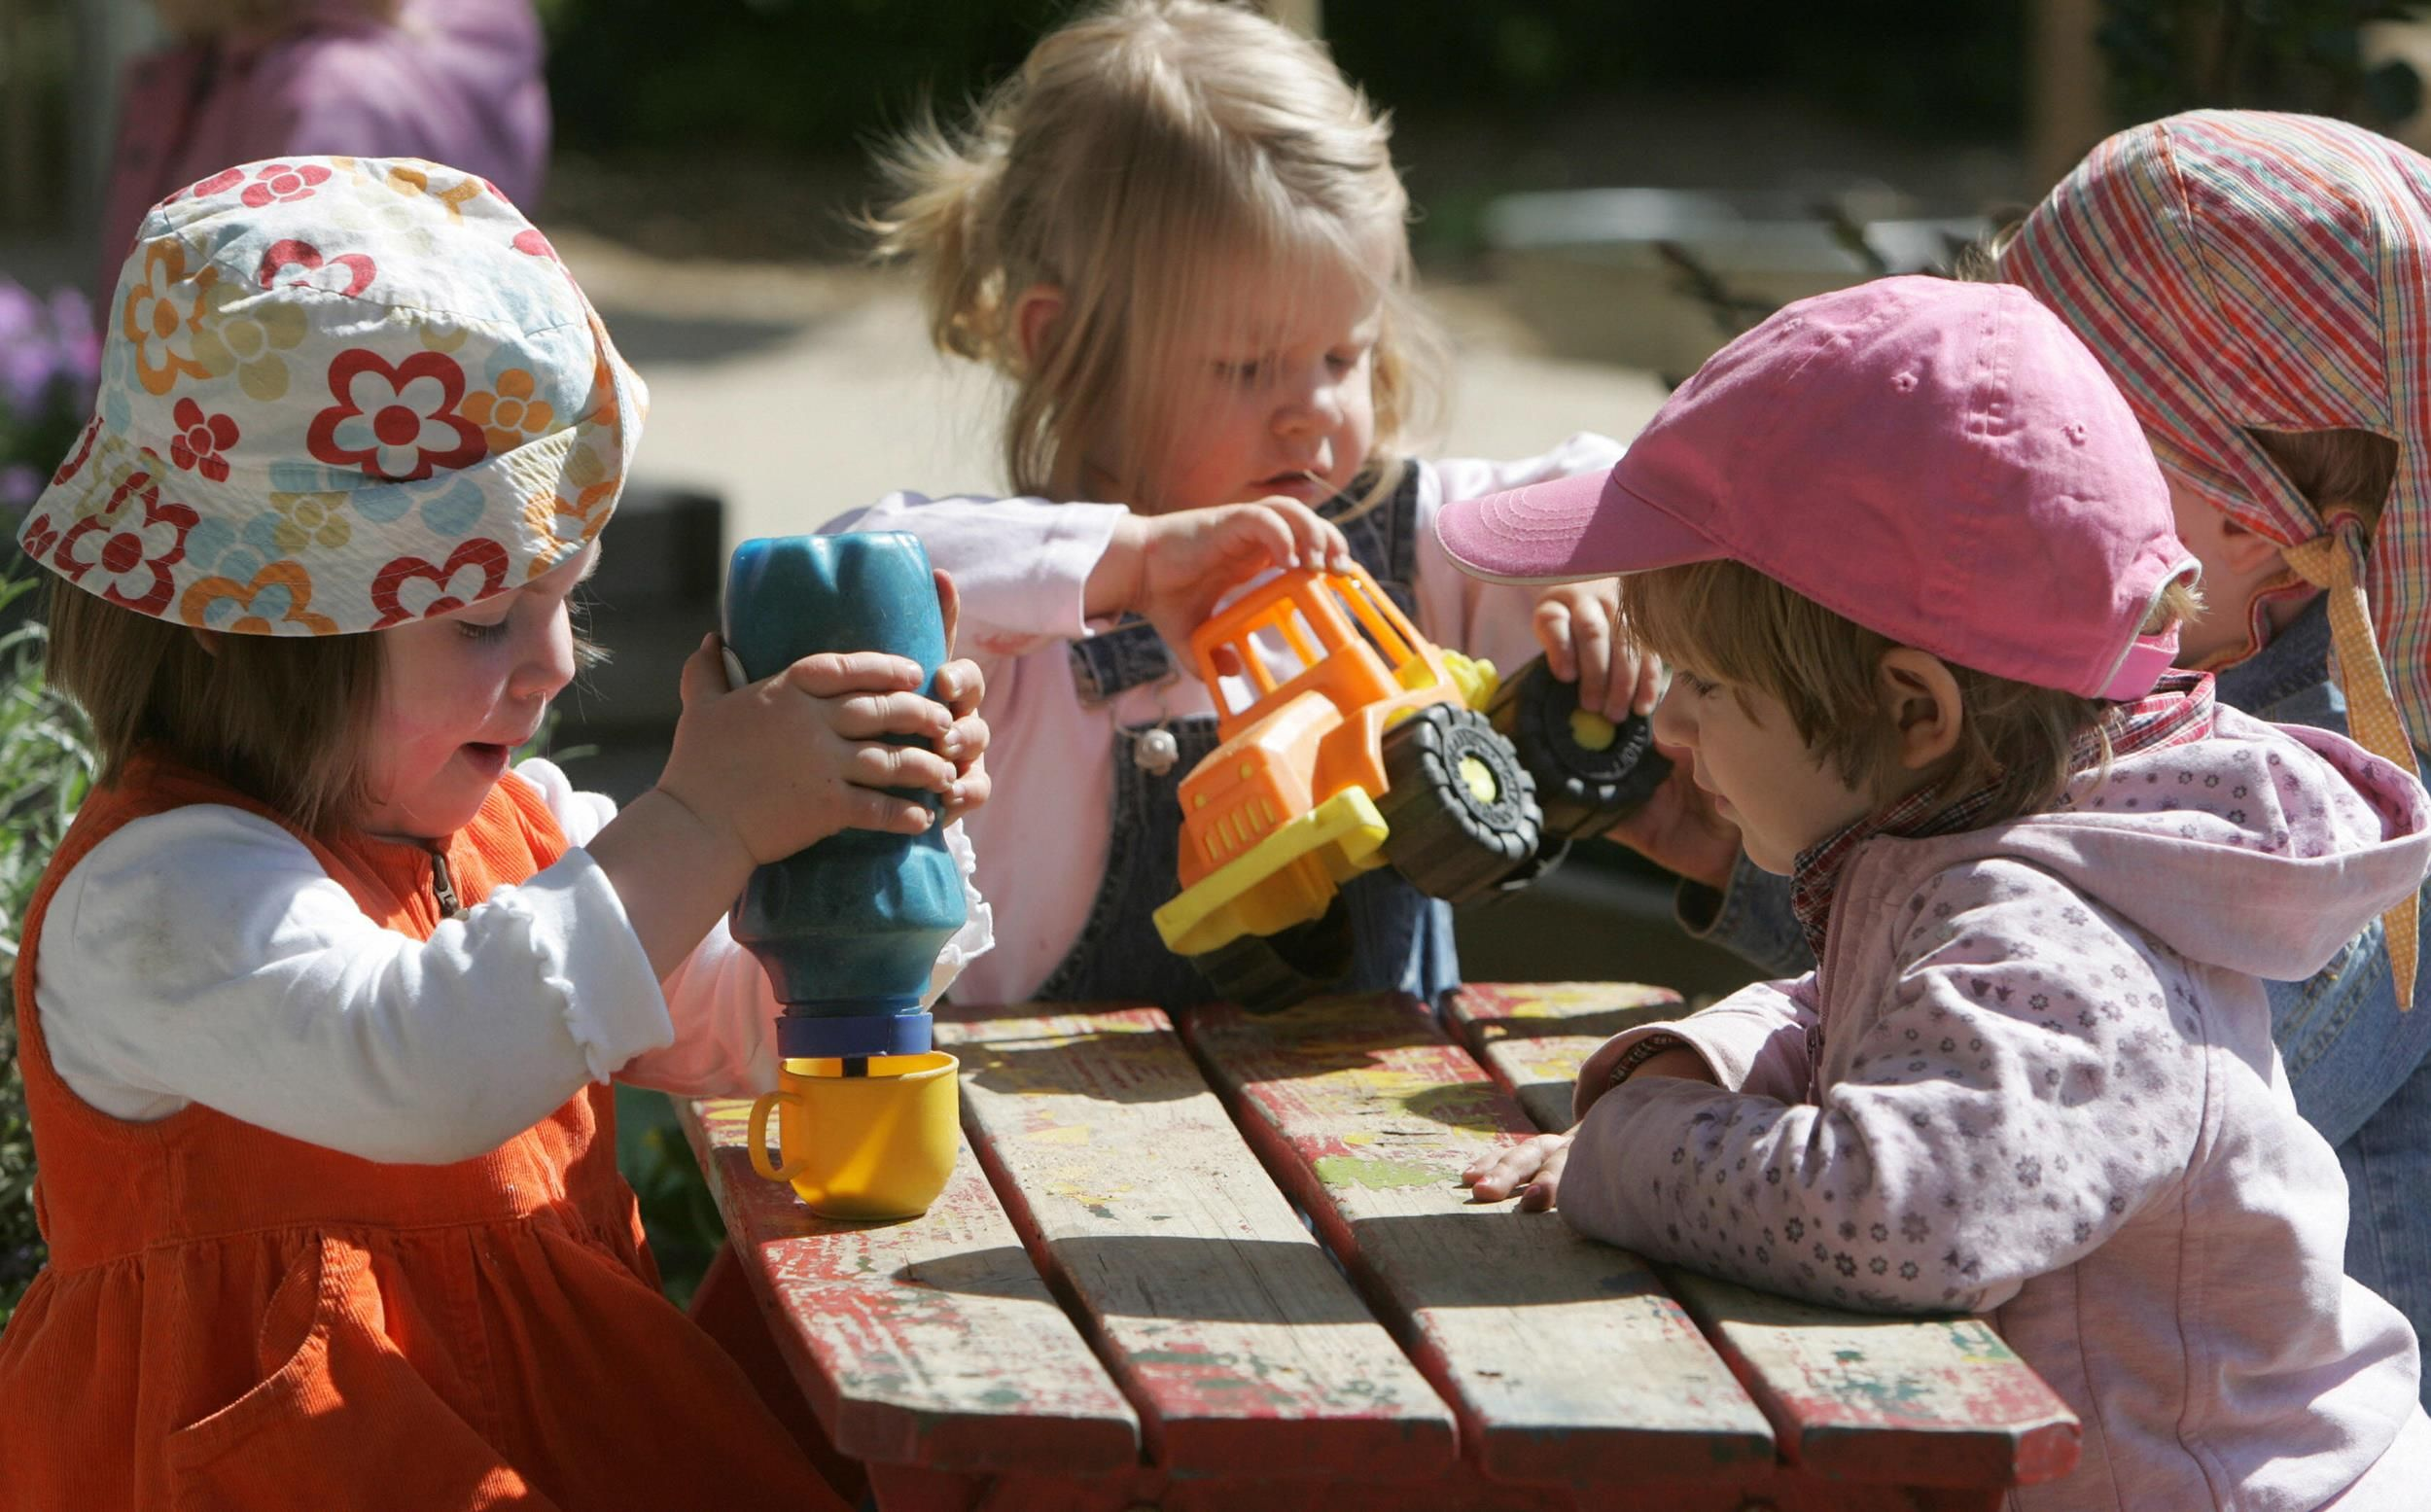 Chemical Phthalates in Food Packaging Linked With Lower IQ in Kids